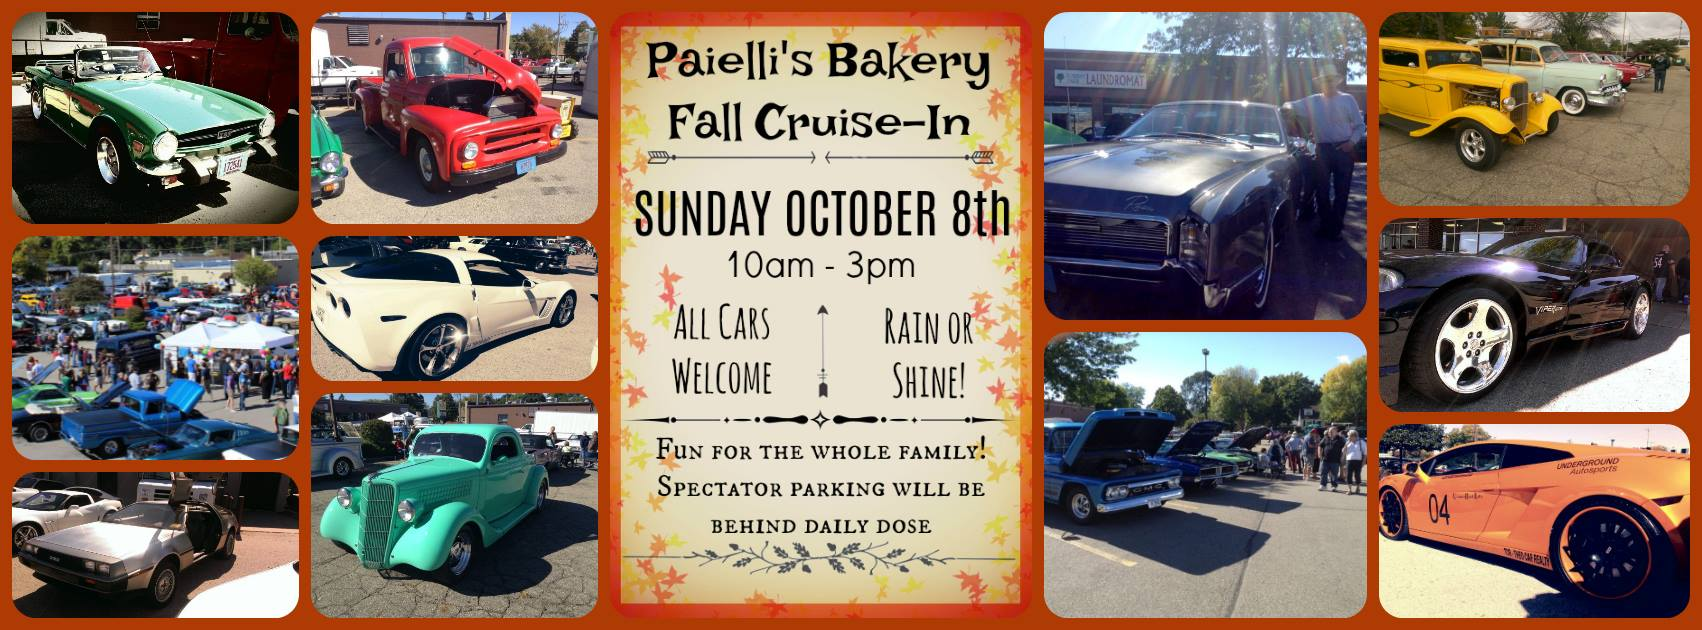 Paielli's Bakery Fall Cruise-in @ Paielli's Bakery | Kenosha | Wisconsin | United States